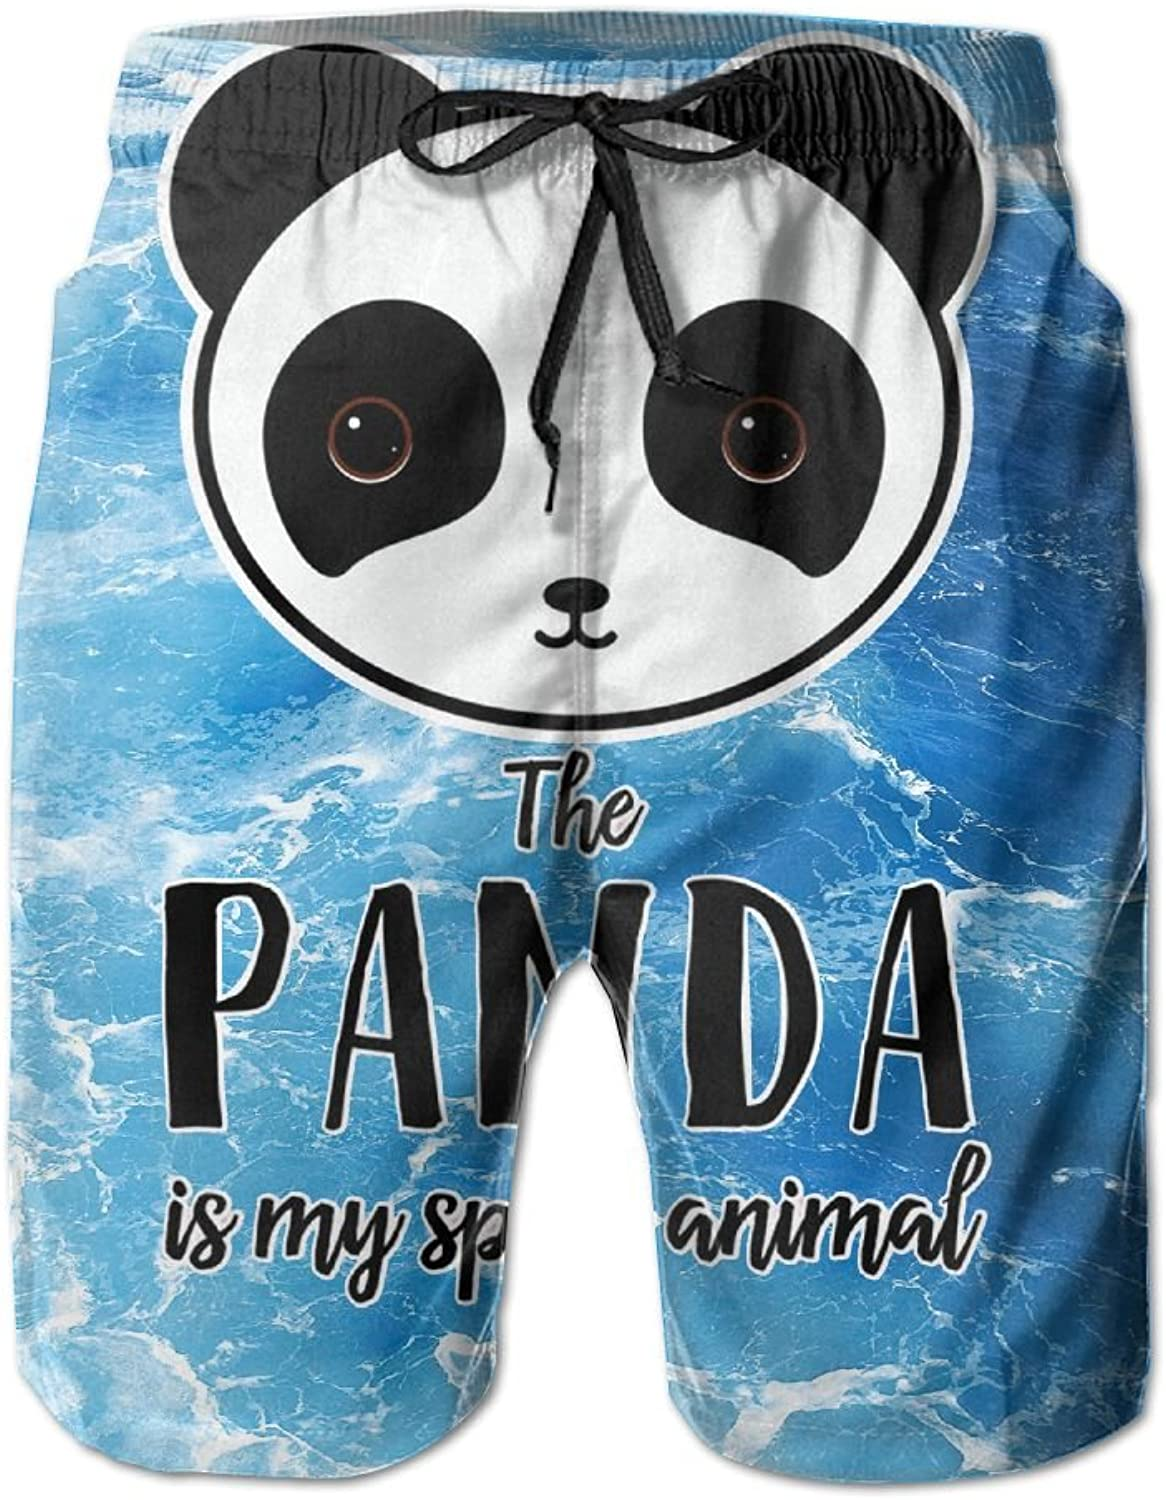 AKSKXMNNPanda is My Spirit Animal Mens Swim Trunks Quick Dry Surf Board Shorts Beach Pant Sportswear